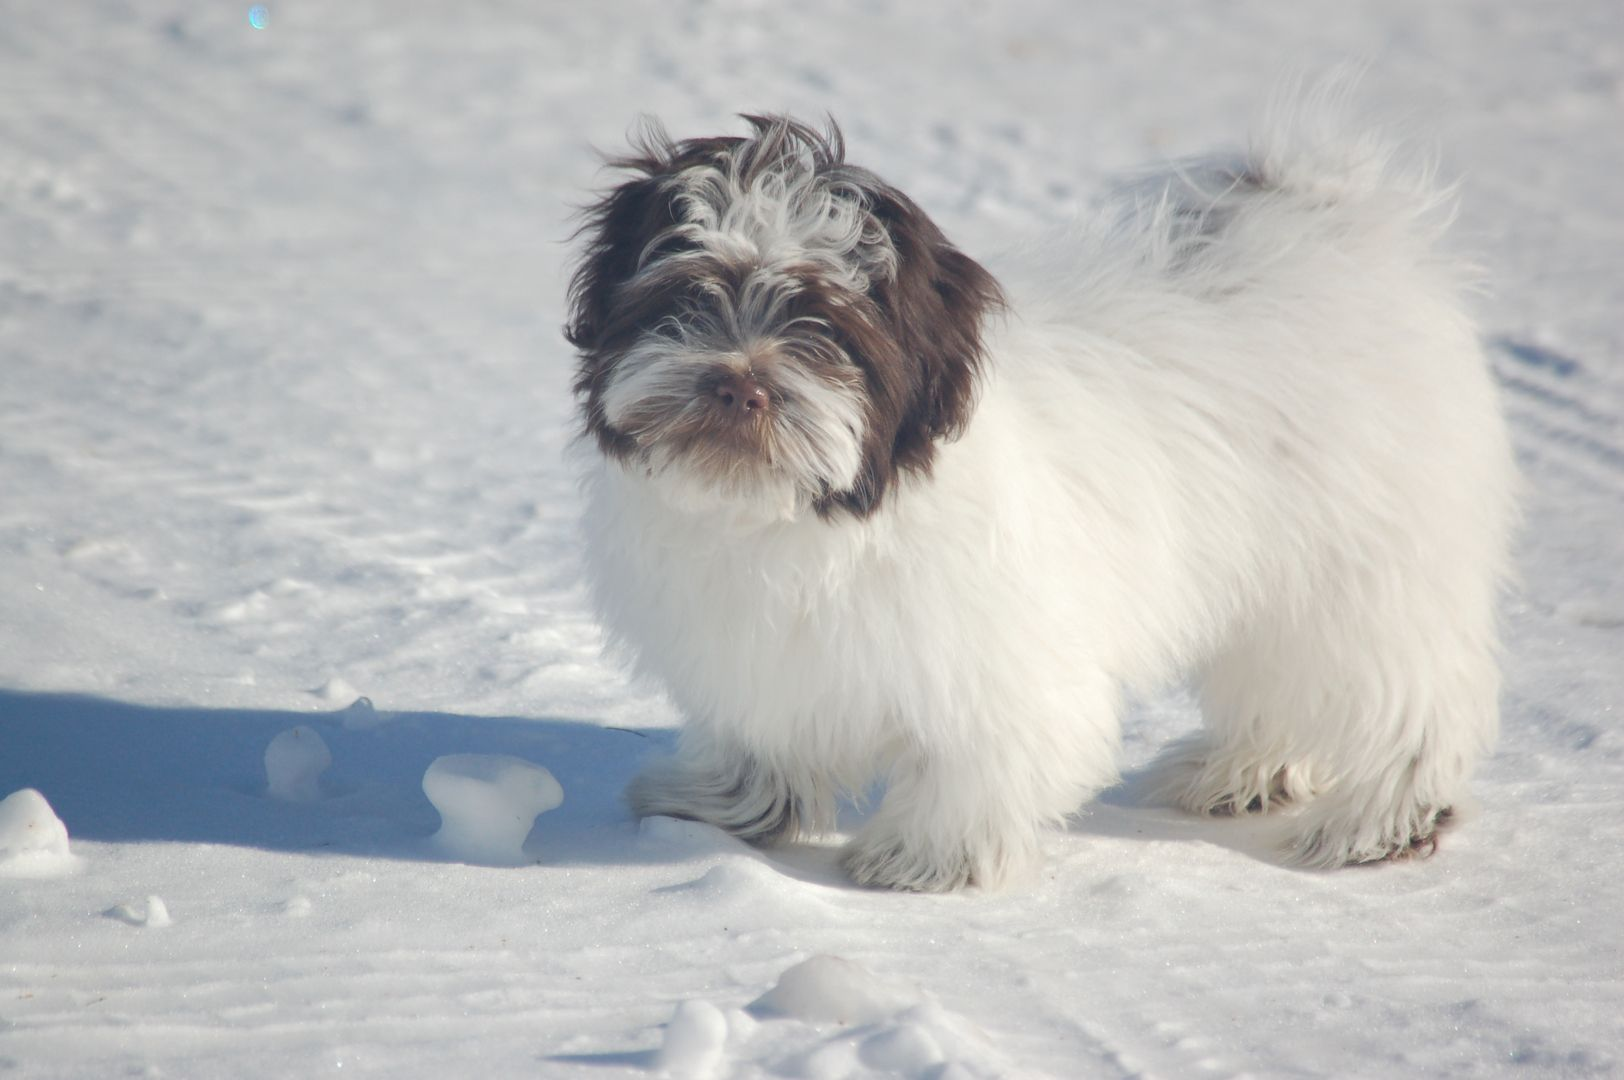 Akc Chocolate Puppies For Sale In Maine Toy Dog Maine Havanese Gray Me Puppies For Sale Havanese Puppies